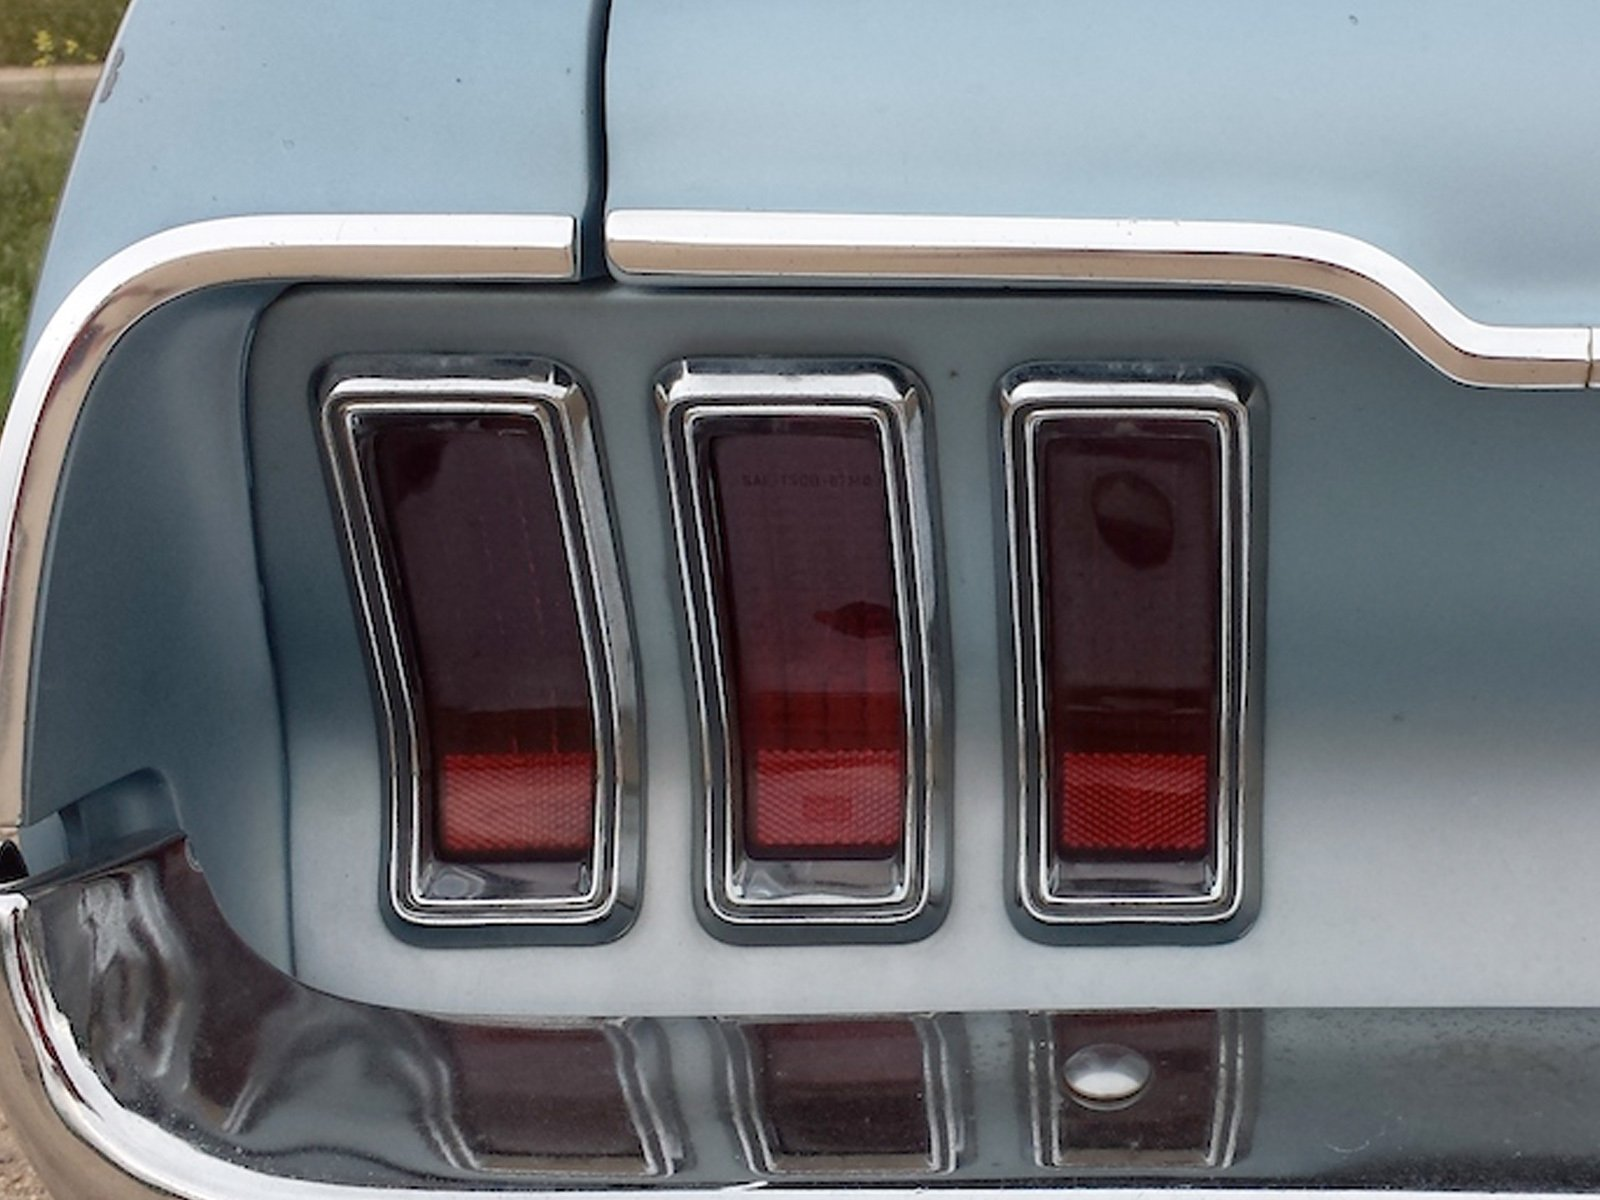 At A Glance How To Spot Differences In 645 68 Mustang 66 Engine Wiring The 1967 Tail Lamp Chrome Left Does Not Have Black Stripe That 1968 Trim Has Right